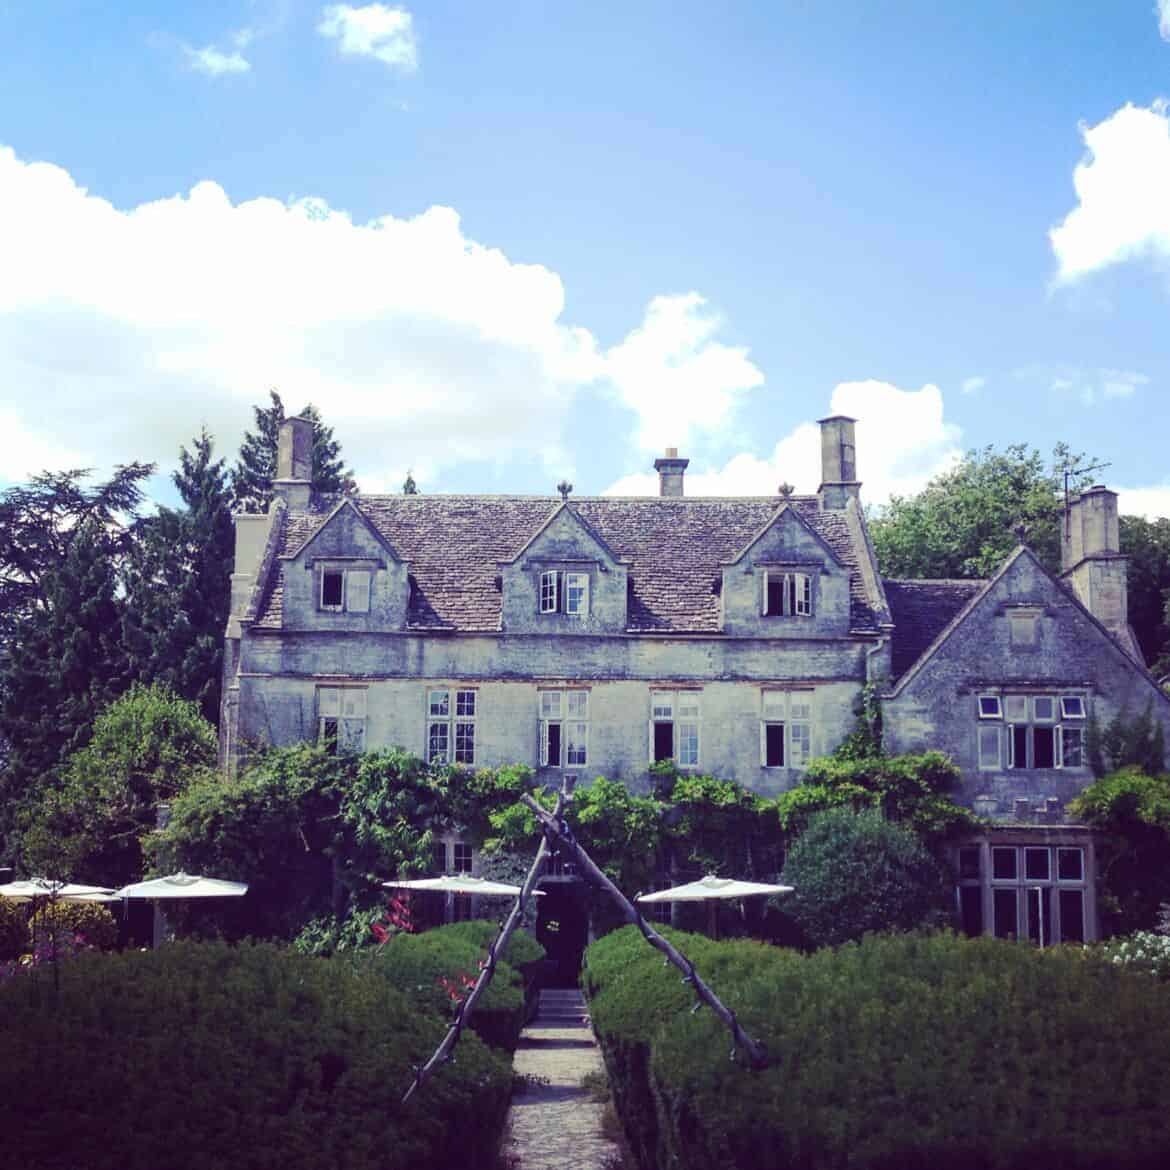 The Barnsley House in Cotswolds